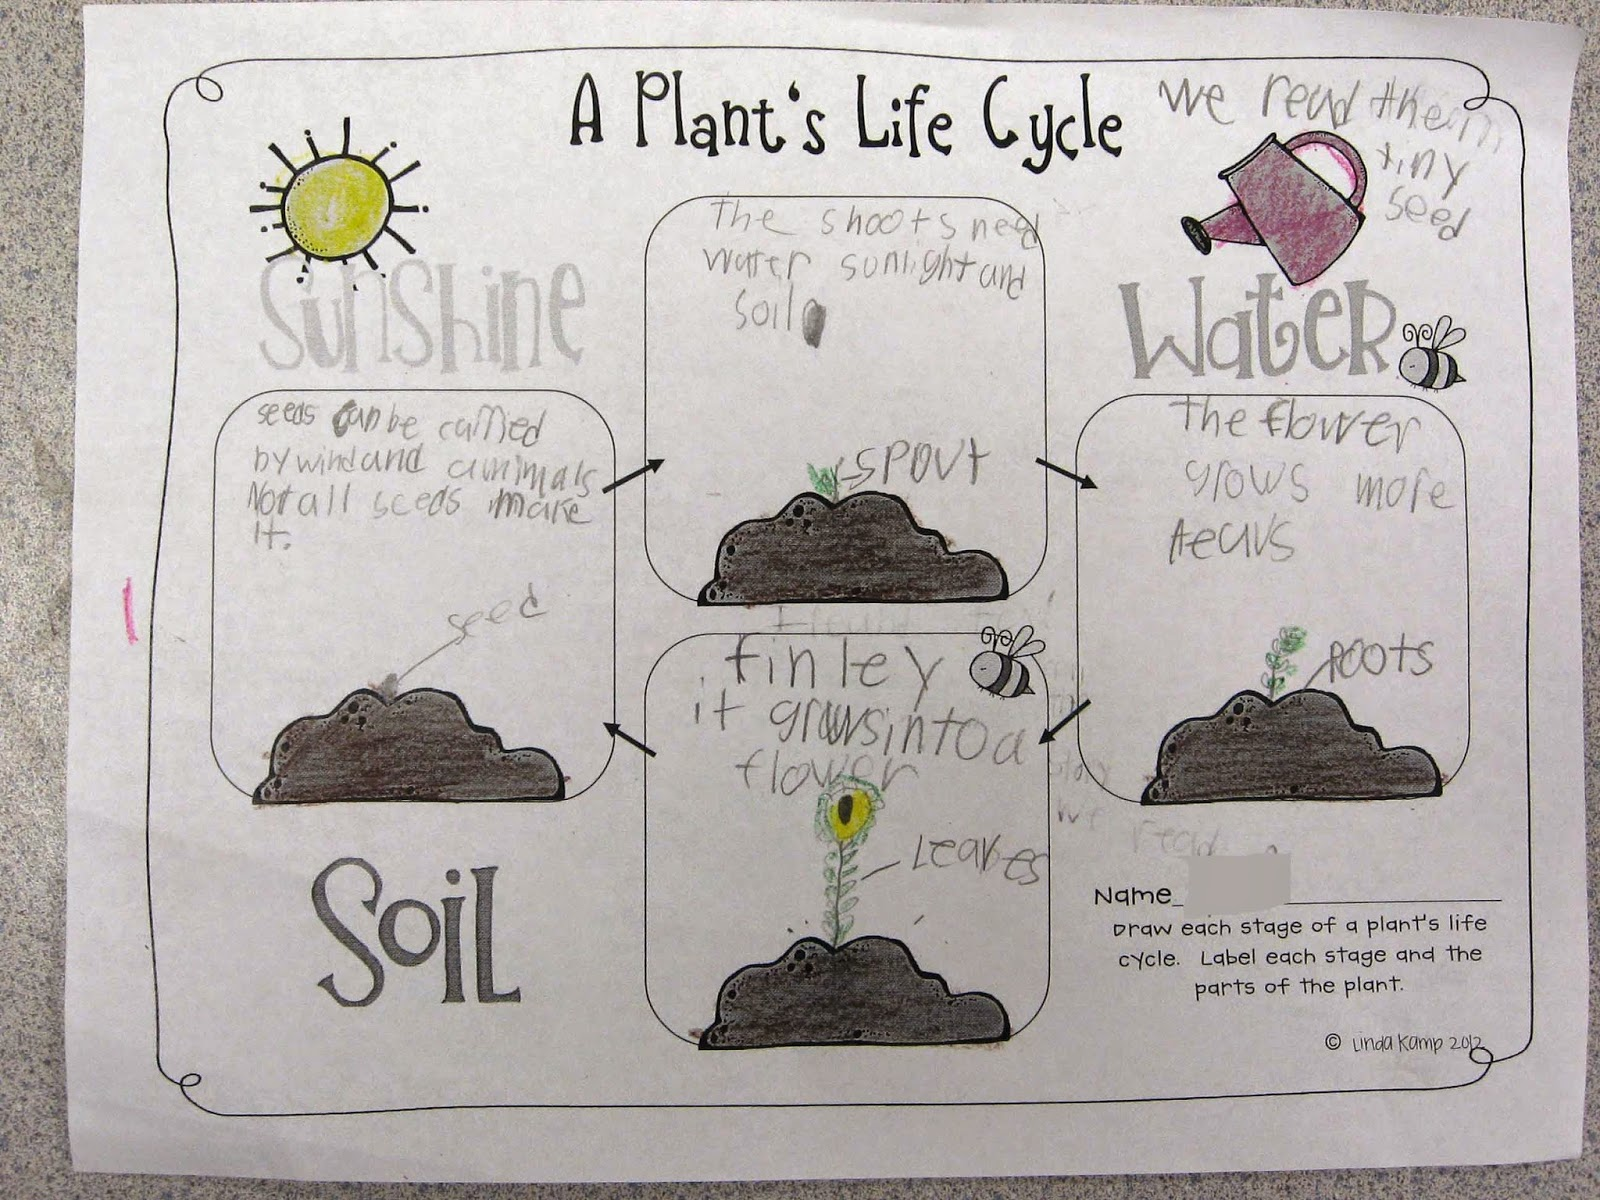 worksheet Plant Cycle Worksheet its plantin time around the kampfire books about plants used thinking maps to label parts of whole categorize we eat and illustrate stages life cycle